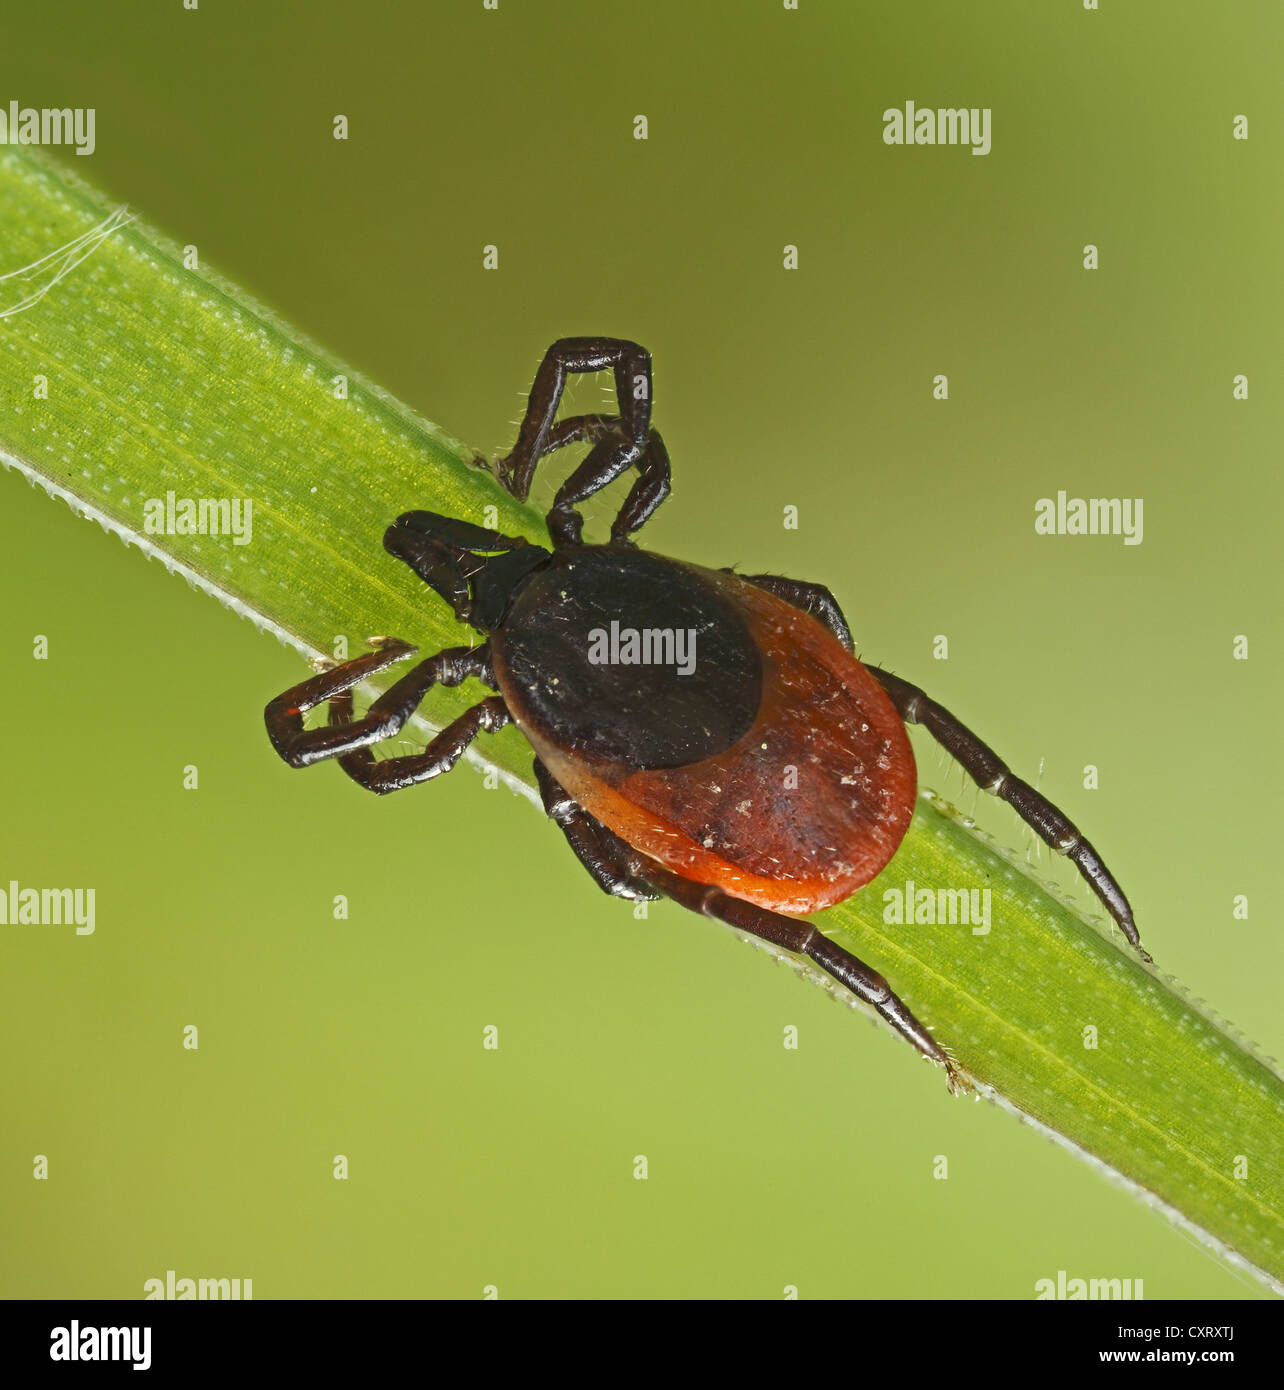 Castor Bean Tick (Ixodes ricinus) on a blade of grass, Hesse, Germany, Europe - Stock Image